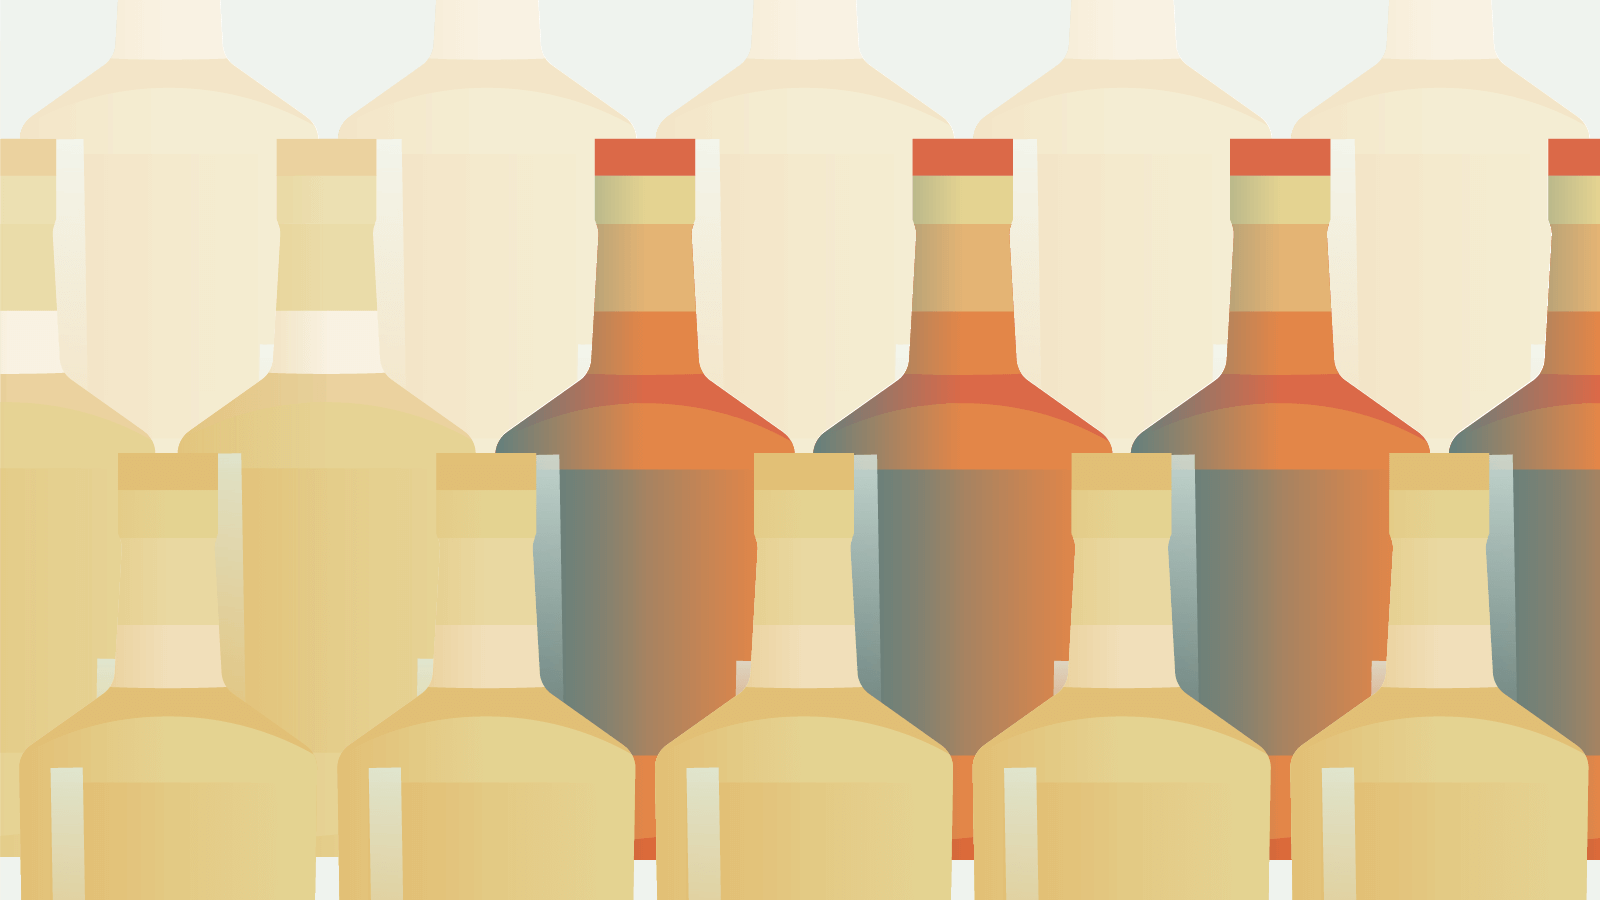 Illustration showing multiple alcohol bottles arranged in three rows